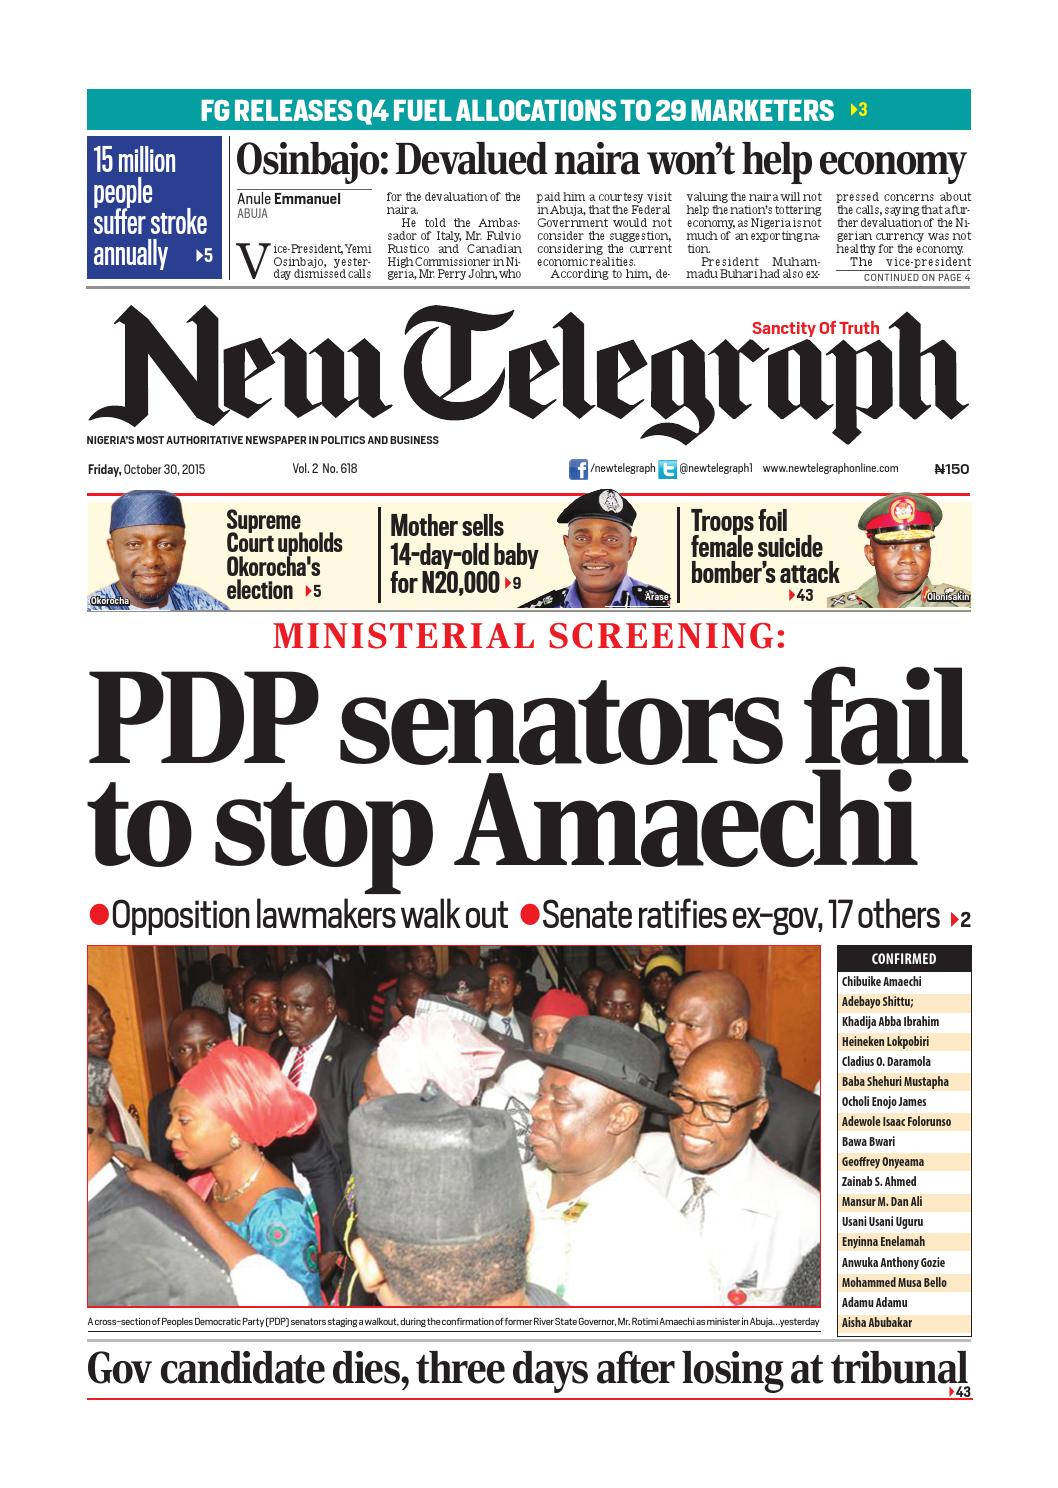 New telegraph friday, october 30, 2015 binder1 by